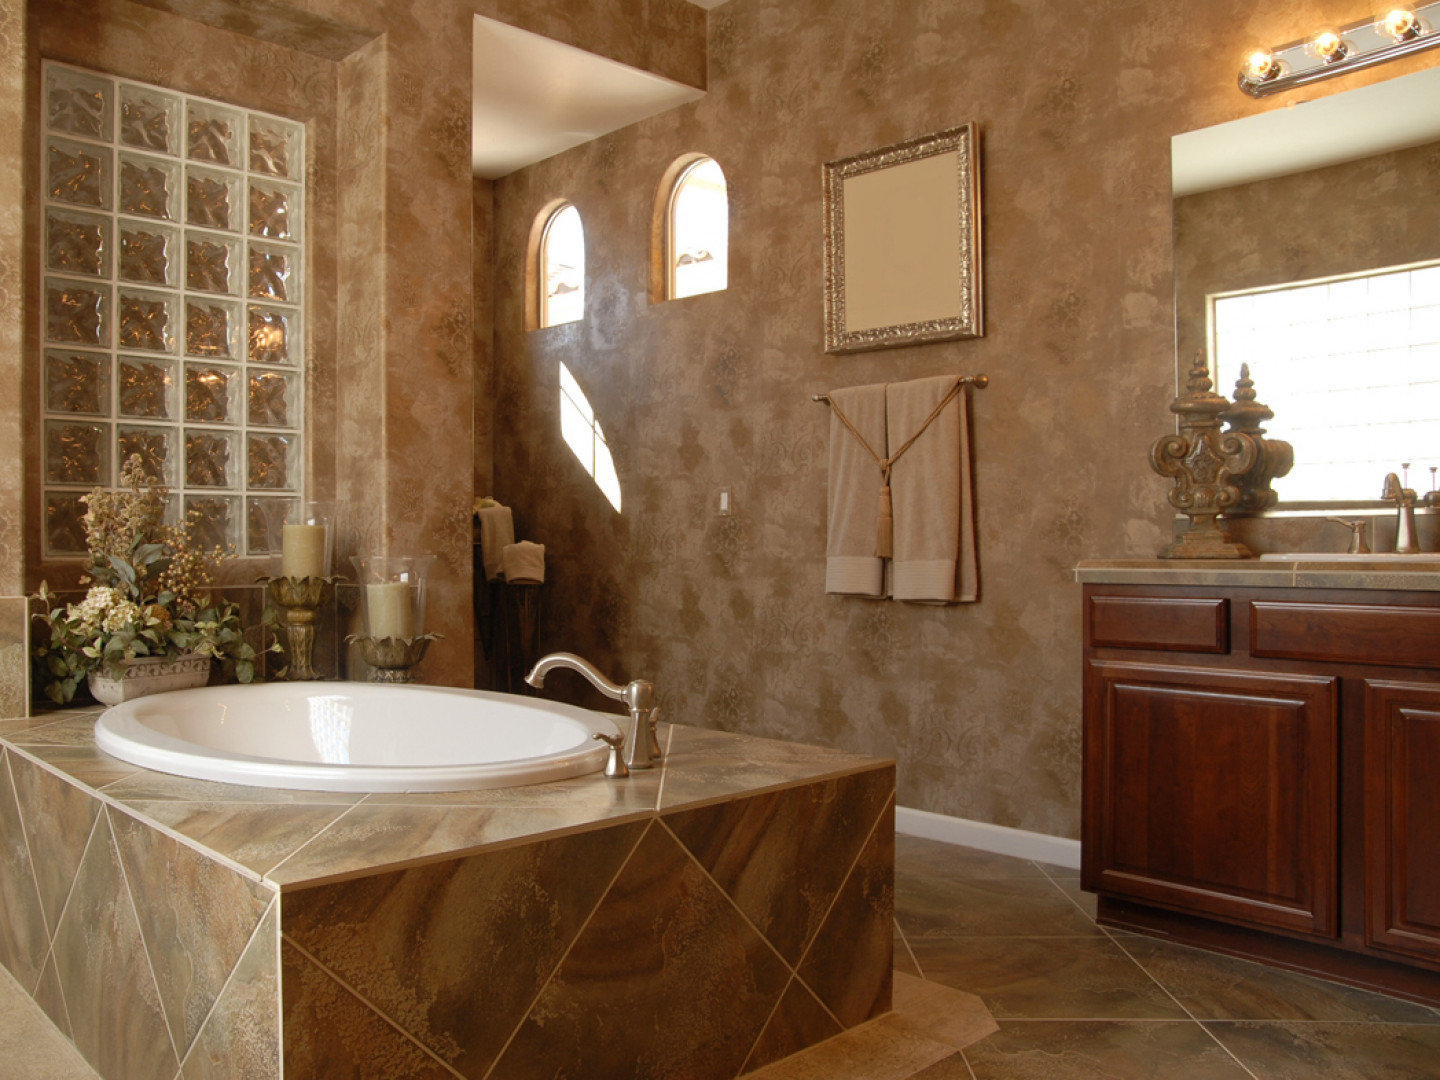 Hire A Skilled Bathroom Remodeler In Kansas City & Shawnee, KS